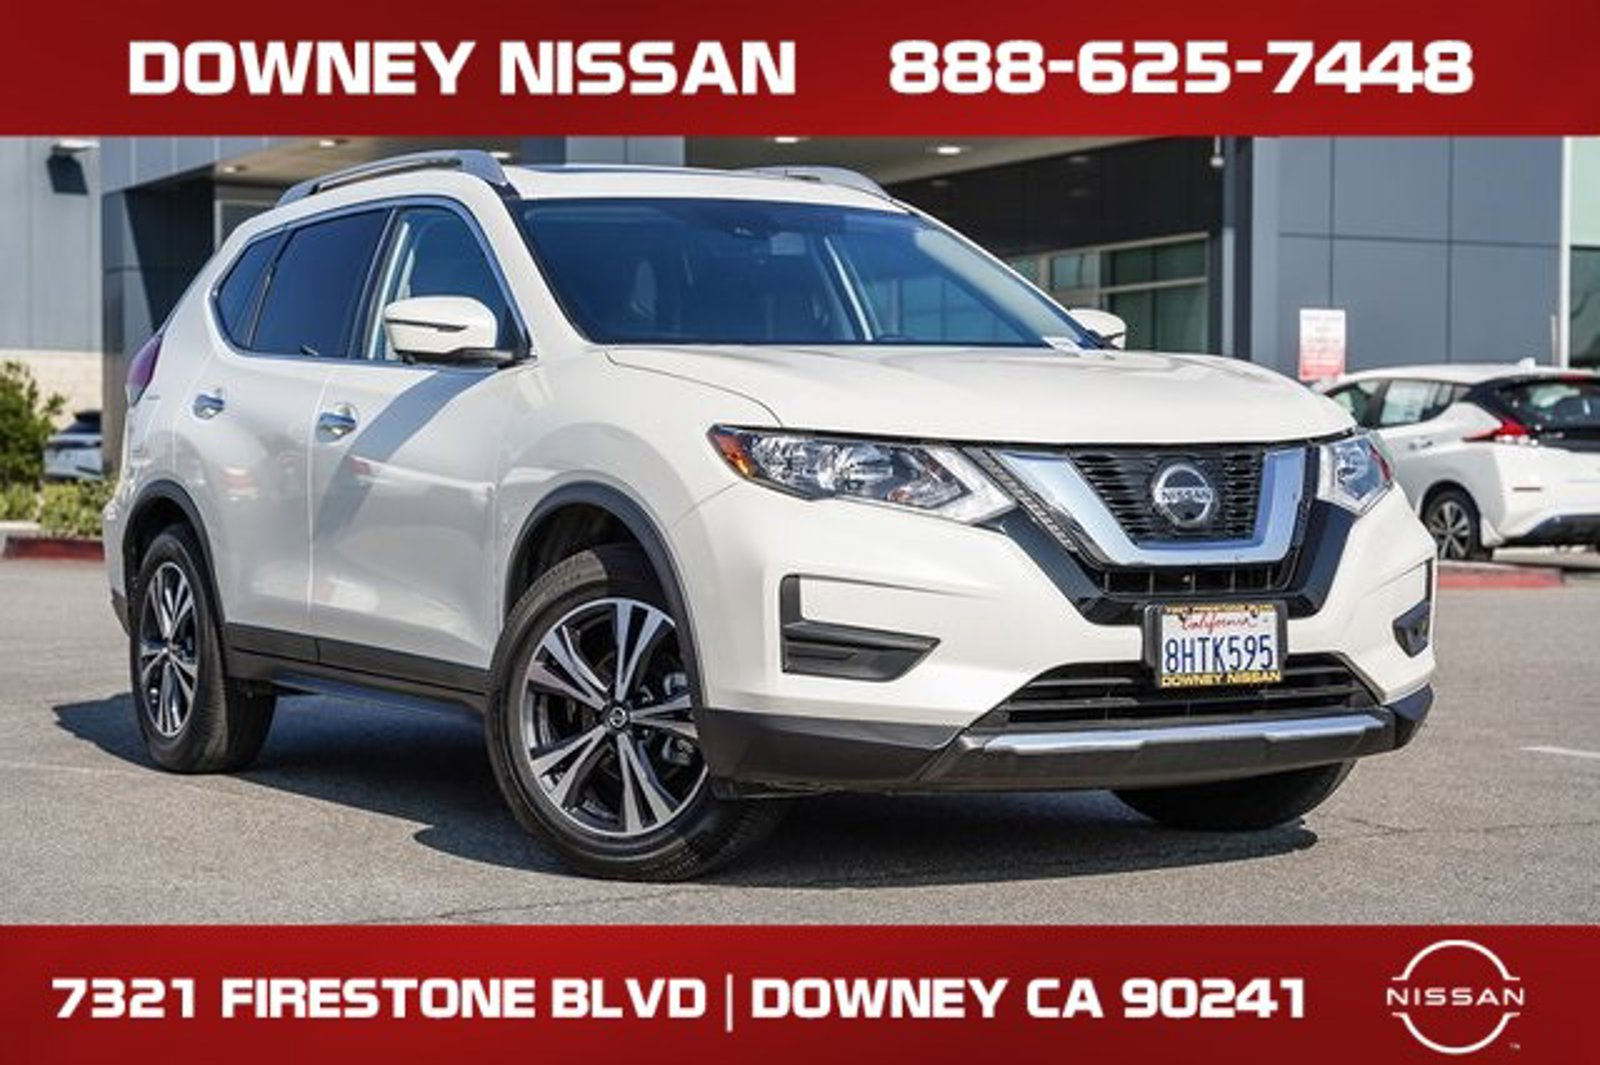 2019 Nissan Rogue SV FWD SV Regular Unleaded I-4 2.5 L/152 [3]